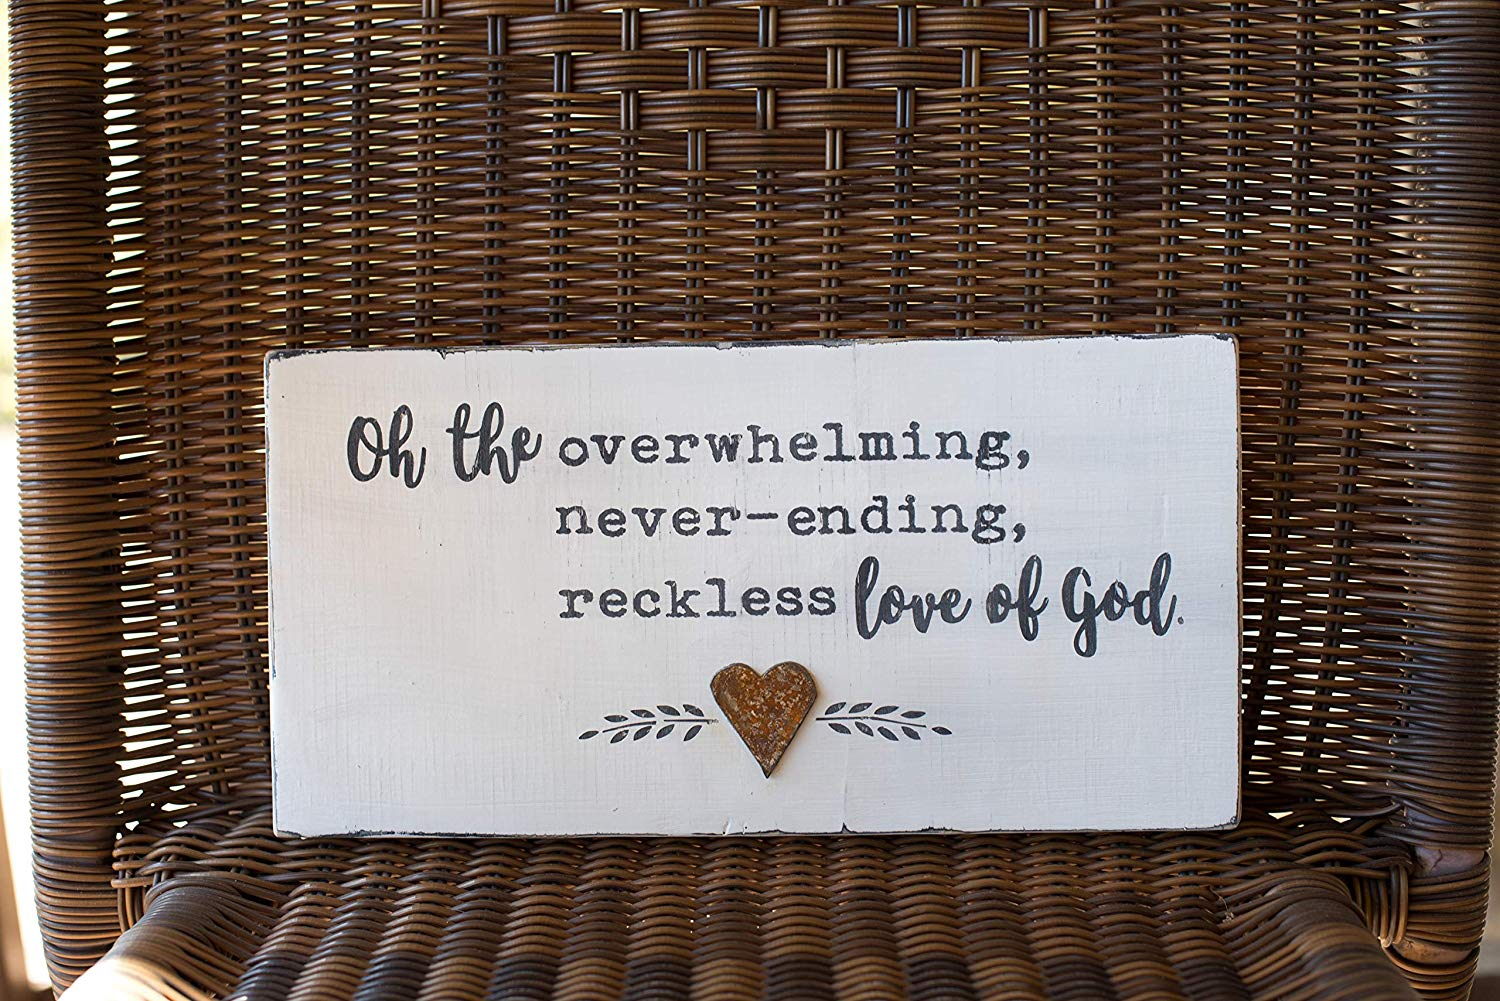 Reckless love of God wood sign, wood sign, home sign, farmhouse, rustic wood sign, weathered wood sign, Hand Painted Wood Sign, Christian